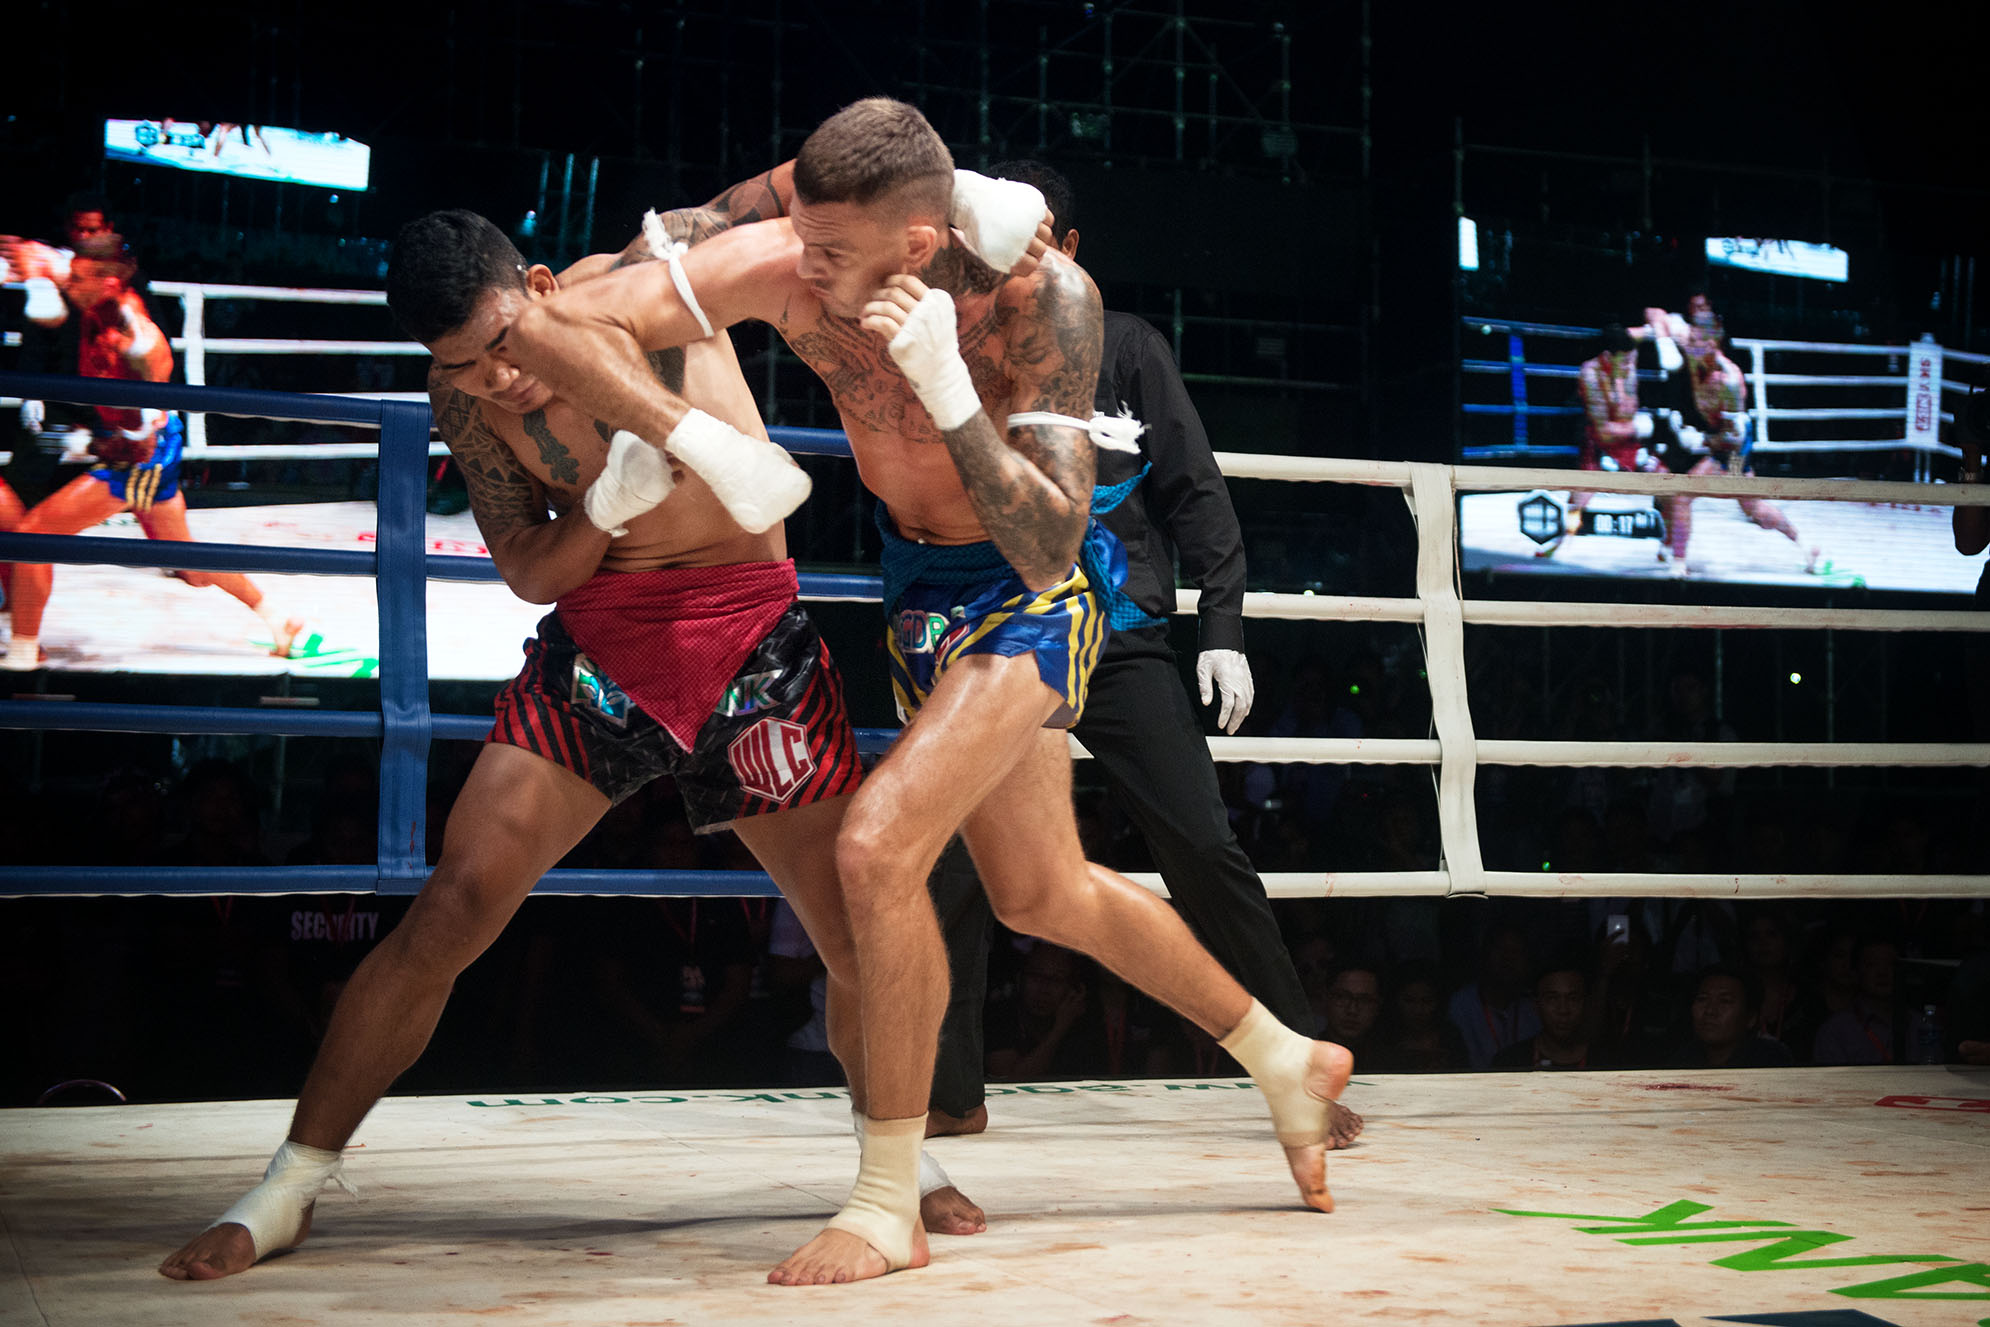 Image from MMA Life